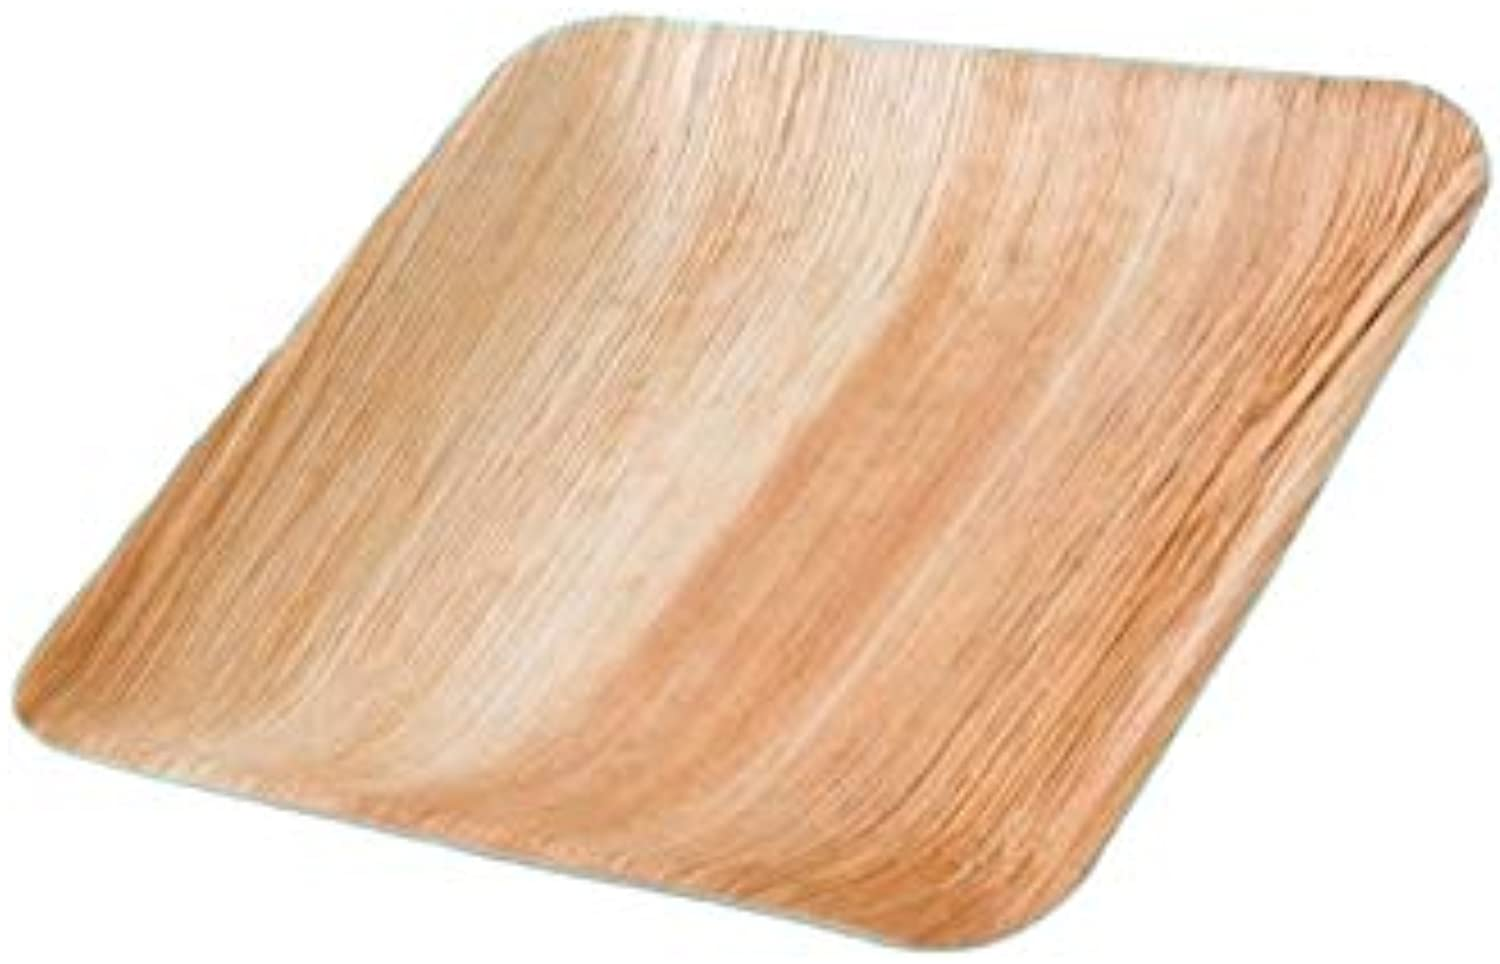 Pro DP 200 Organic Palm Leaf Plates Palm Leaves Finger Food Snack Plate Party Plates Square 20 x 20 cm (incl. DSD Fee)